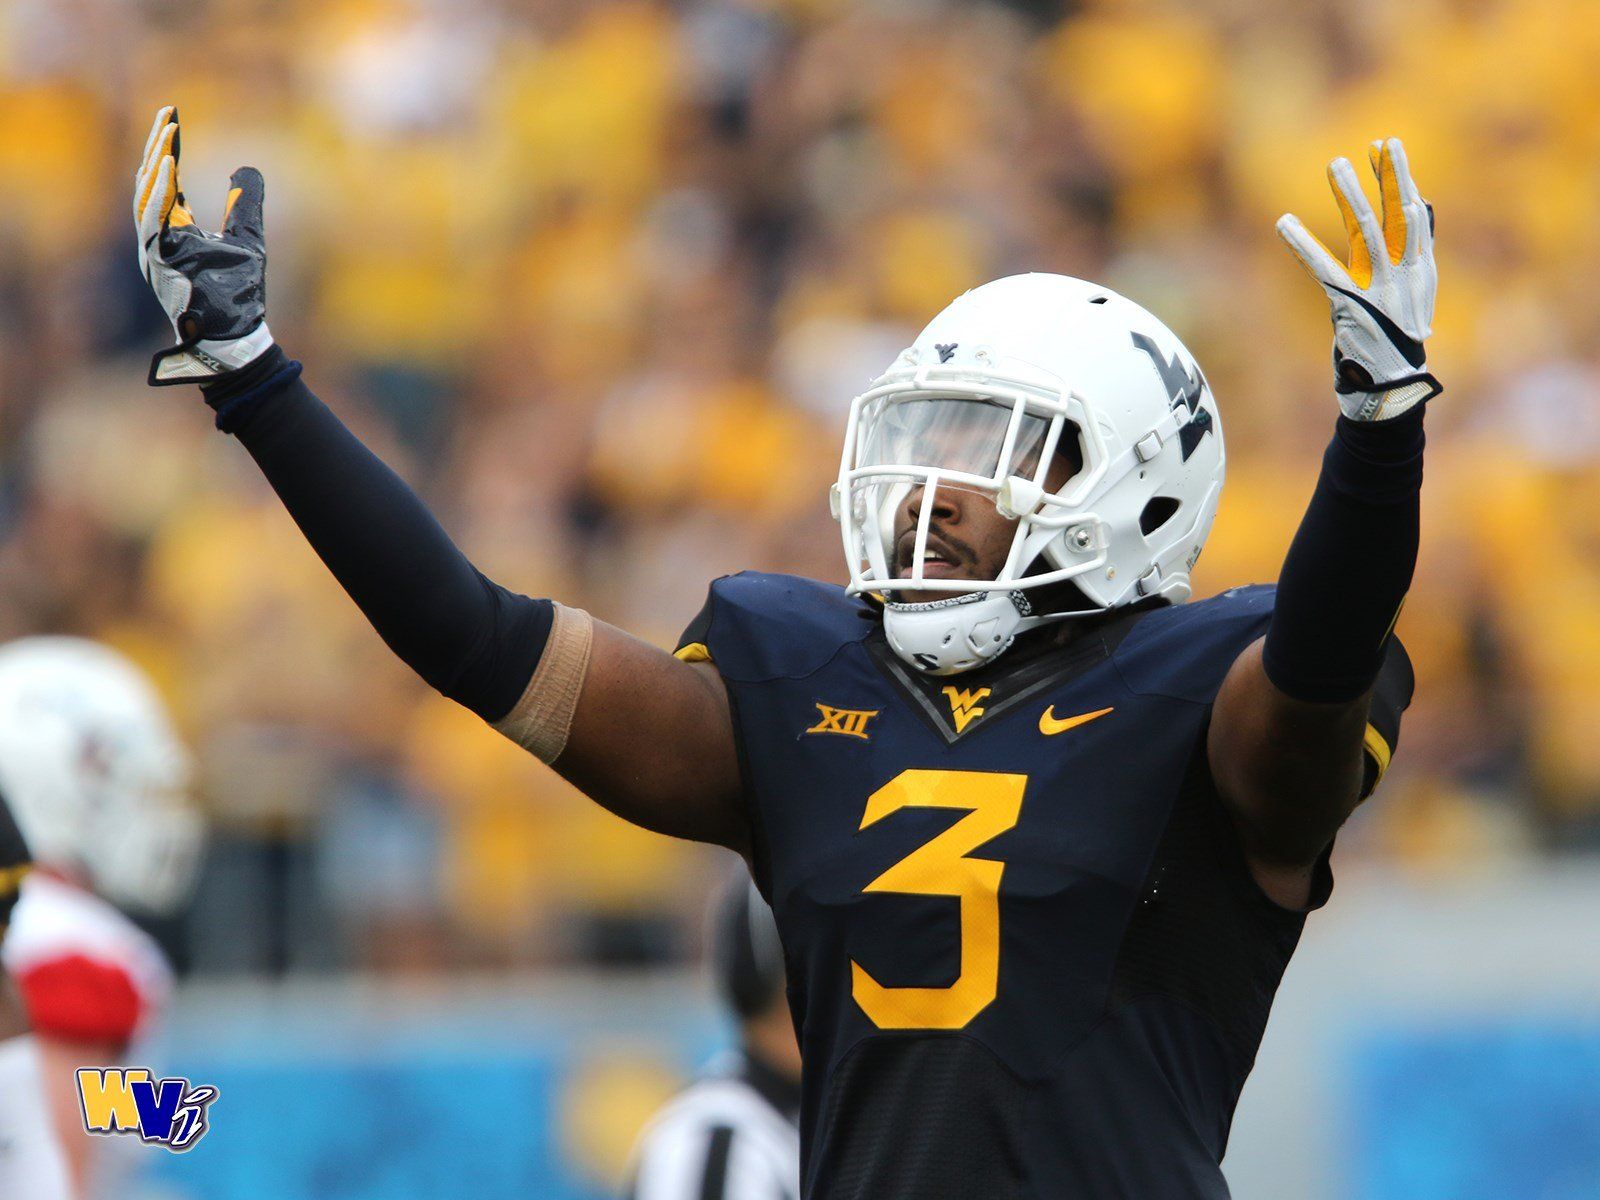 WVU senior linebacker Al-Rasheed Benton celebrates a sack against Delaware State. (PHOTO: Scott Lituchy)